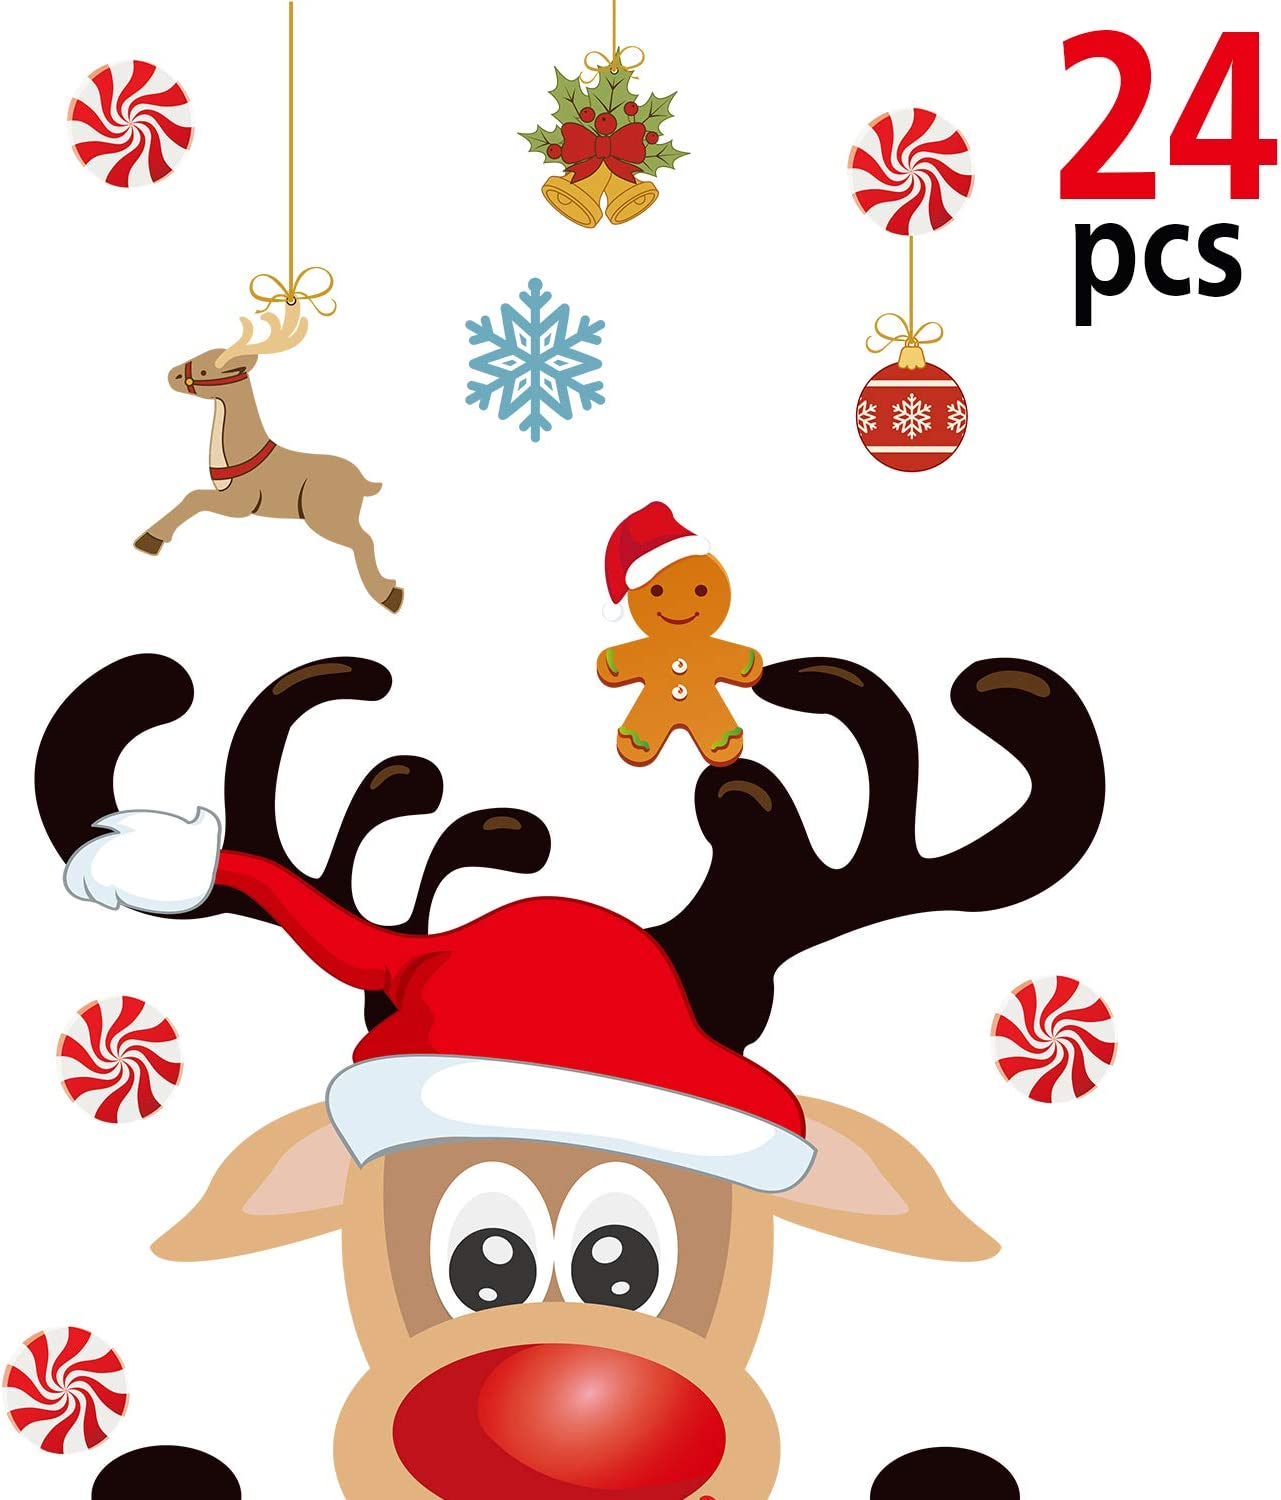 Blulu Christmas Party Decoration, Animated Christmas Fridge Magnet Set, Magnet Refrigerator Stickers Holiday Christmas Decorations for Fridge, Metal Door, Garage, Office (Reindeer Magnet, 24 Pieces)